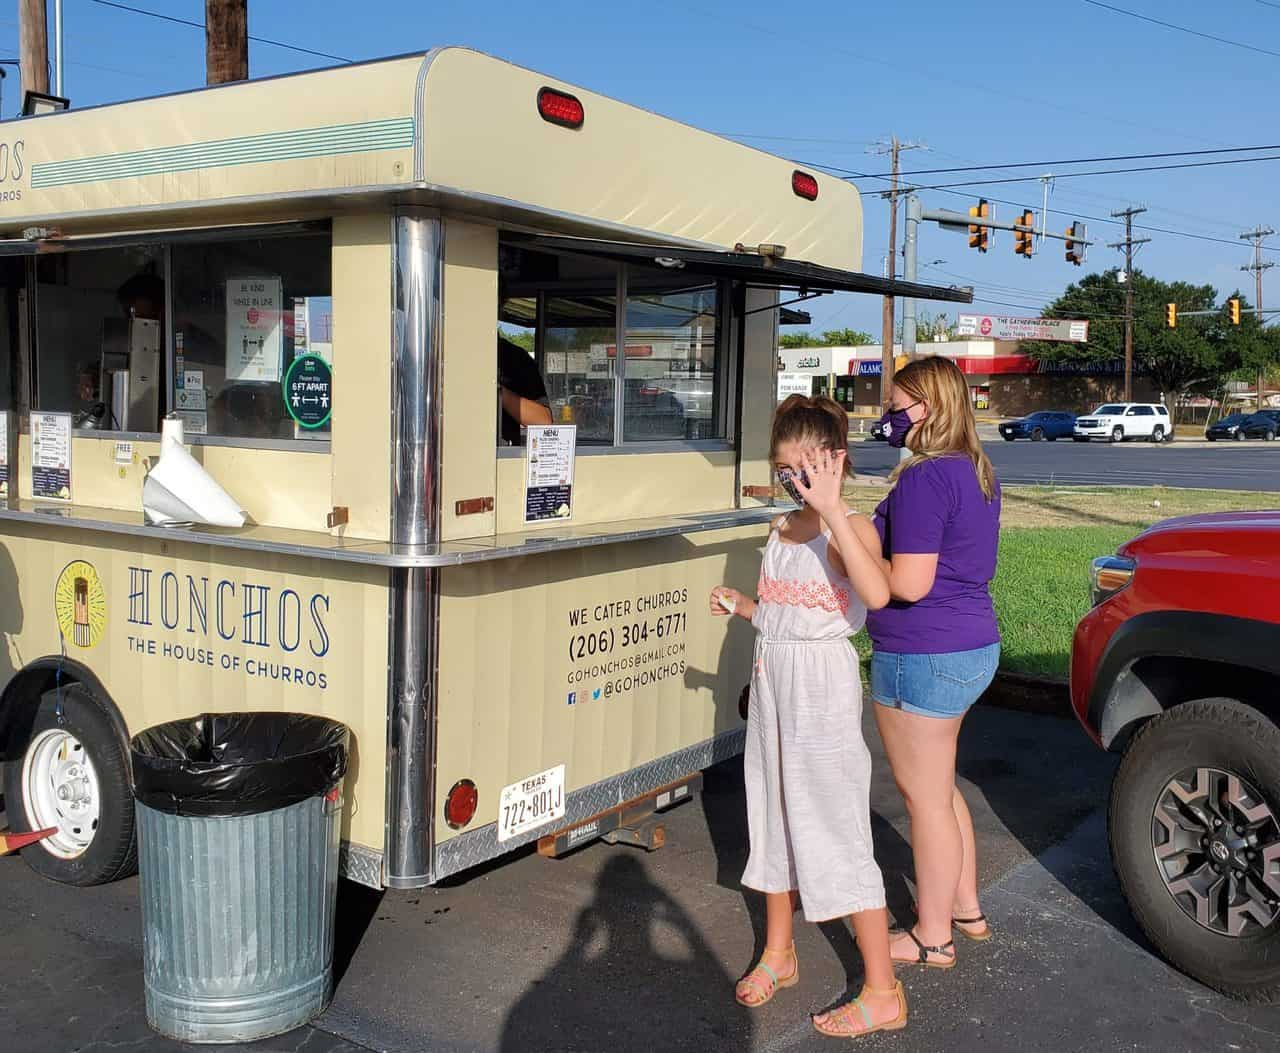 Honchos house of Churros food truck